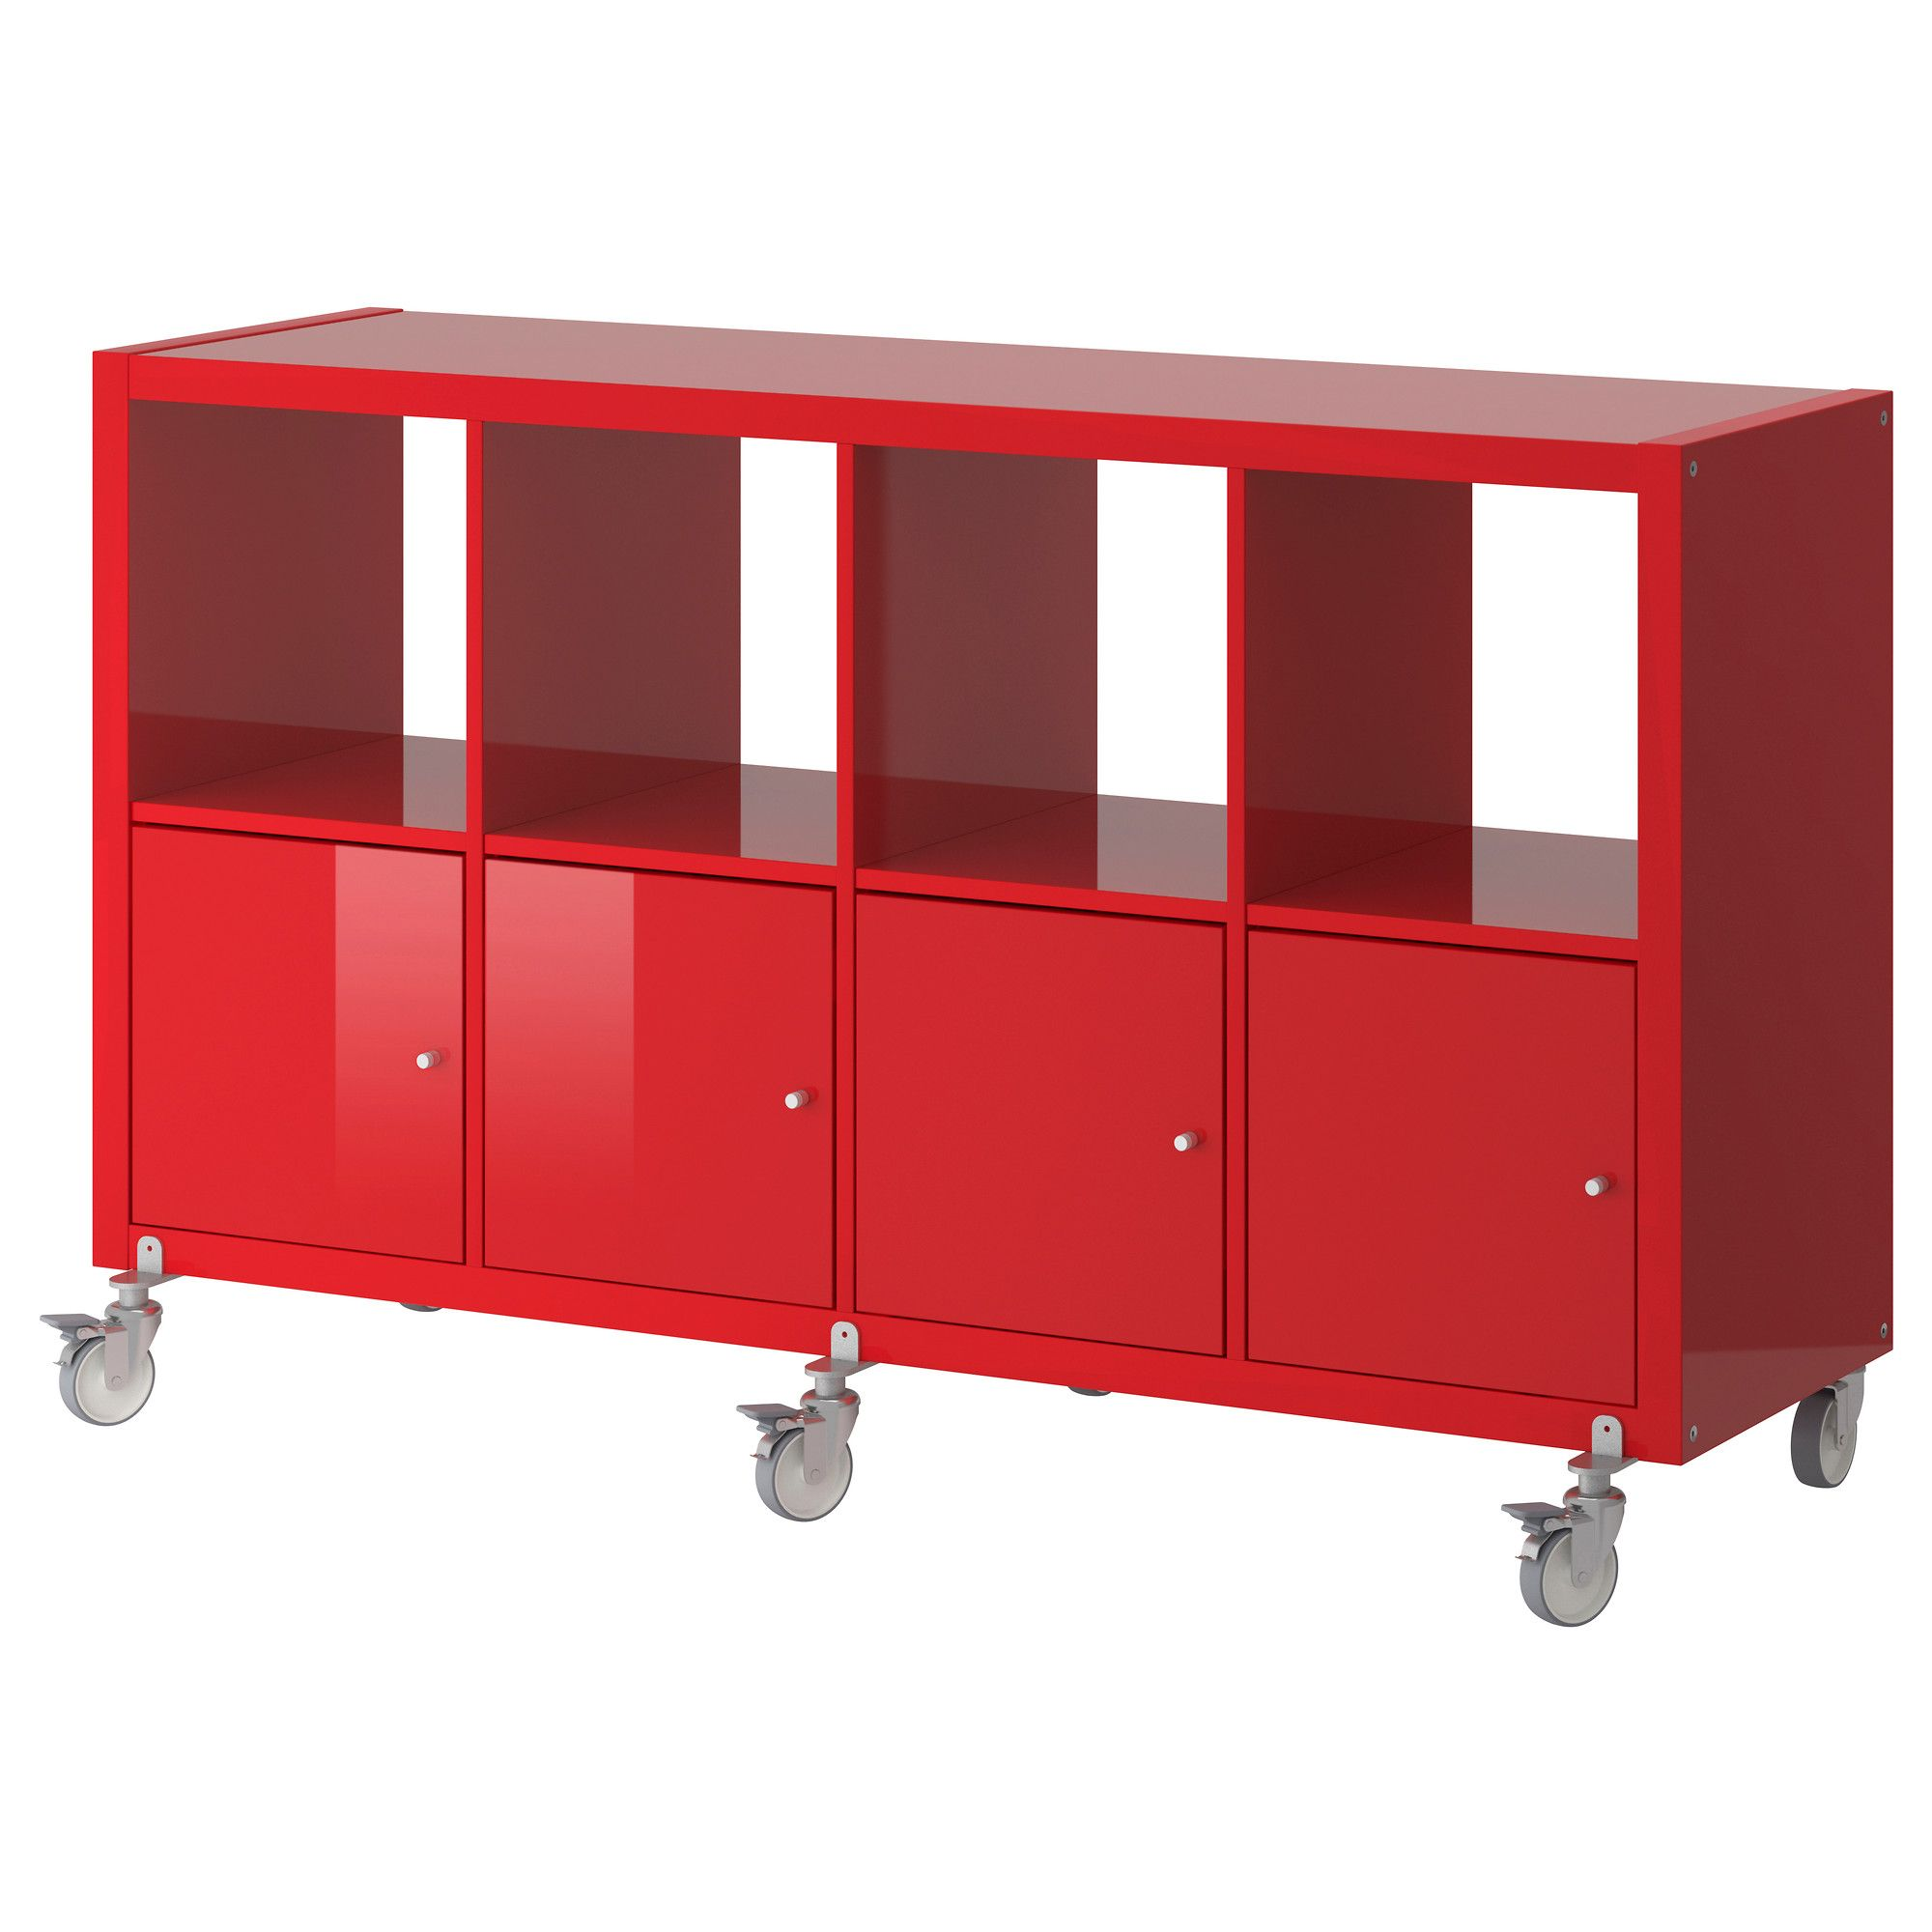 KALLAX Shelf unit on casters with 4 doors - high gloss red ...